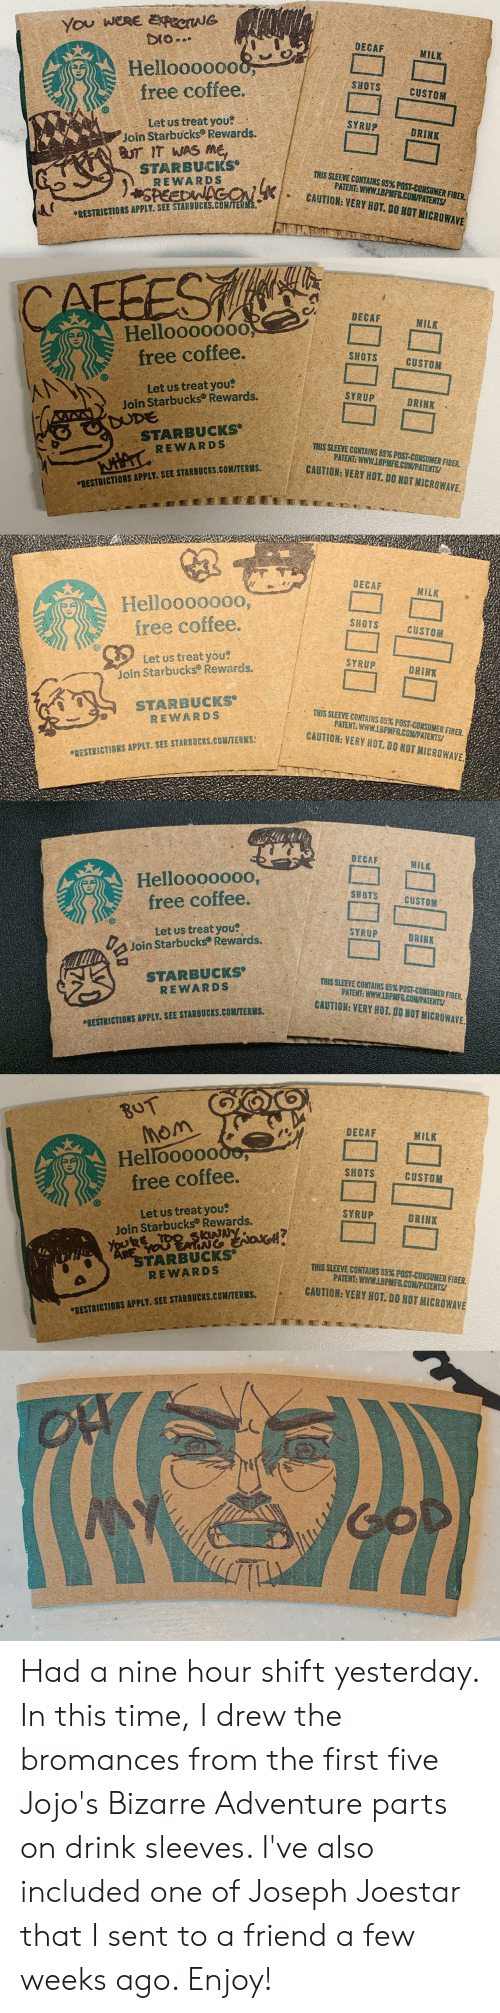 Terus: You WERE ERCNG  DIO.  DECAF  MILK  Helloooo000  free coffee.  SHOTS  CUSTOM  Let us treat you  Join Starbucks Rewards.  BUT IT WAS Me  STARBUCIKS  REWARDS  SPEEDWACON  SYRUP  DRINK  THIS SLEEVE CONTAINS 85% POST-CONSUMER FIBER  PATENT: WWW.LBPMFS.COMPATENTS  CAUTION: VERY HOT. DO NOT MICROWAVE  RESTRICTIONS APPLY. SEE STANBOCKS.COM/TERS  CAFFEST  DECAF  MILK  Helloooo00O,  free coffee.  SHOTS  CUSTOM  Let us treat you  Join Starbucks Rewards.  SYRUP  DRINK  DUDE  STARBUCKS  THIS SLEEVE CONTAINS 85% POST - CONSUMER FIBER.  PATENT: WWW.LBPMFS.COM/PATENTS  CAUTION: VERY HOT. DO NOT MICROWAVE.  NHAT REWARDS  RESTRICTIONS APPLY. SEE STARBUCKS.COM/TERUS  DECAF  MILK  Helloooo000,  free coffee.  SHOTS  CUSTOM  Let us treat you  Join Starbucks Rewards.  SYRUP  DRINK  STARBUCKS  REWARDS  THIS SLEEVE CONTAINS 85% POST -CONSUMER FIBER.  PATENT: WWW.LBPMFG.COMPATENTS/  CAUTION: VERY HOT. DO NOT MIEROWAVE  RESTRICTIORS APPLY. SEE STARBUCKS.COM/TERMS  DECAF  MILK  Helloooo000,  free coffee.  SHOTS  CUSTOM  Let us treat you  Join Starbucks Rewards.  SYRUP  DRINK  STARBUCKS  REWARDS  THIS SLEEVE CORTAINS 85% POST-CONSUMER FISER  PATENT: WWW.LBPMF6.COM/PATENTS  CAUTION: VERY HOT. DO NOT MICROWAVE  RESTRICTIONS APPLY. SEE STARBUCKS.COMITERNS.  BOT  Mom  Hellooooooo,  free coffee.  DECAF  MILK  SHOTS  CUSTOM  Let us treat you  Join Starbucks® Rewards.  YouRE TOO Skw  SYRUP  DRINK  AREYOU ATI ox  STARBUCKS  REWARDS  THIS SLEEVE CONTAINS 85% POST-CONSUMER FIBER  PATENT: WWW.LBPMFG.COM/PATENTS  CAUTION: VERY HOT. DO NOT MICROWAVE  RESTRICTIORS APPLY. SEE STARBUCKS.COM/TERES  COD  TUINL  ofo Had a nine hour shift yesterday. In this time, I drew the bromances from the first five Jojo's Bizarre Adventure parts on drink sleeves. I've also included one of Joseph Joestar that I sent to a friend a few weeks ago. Enjoy!